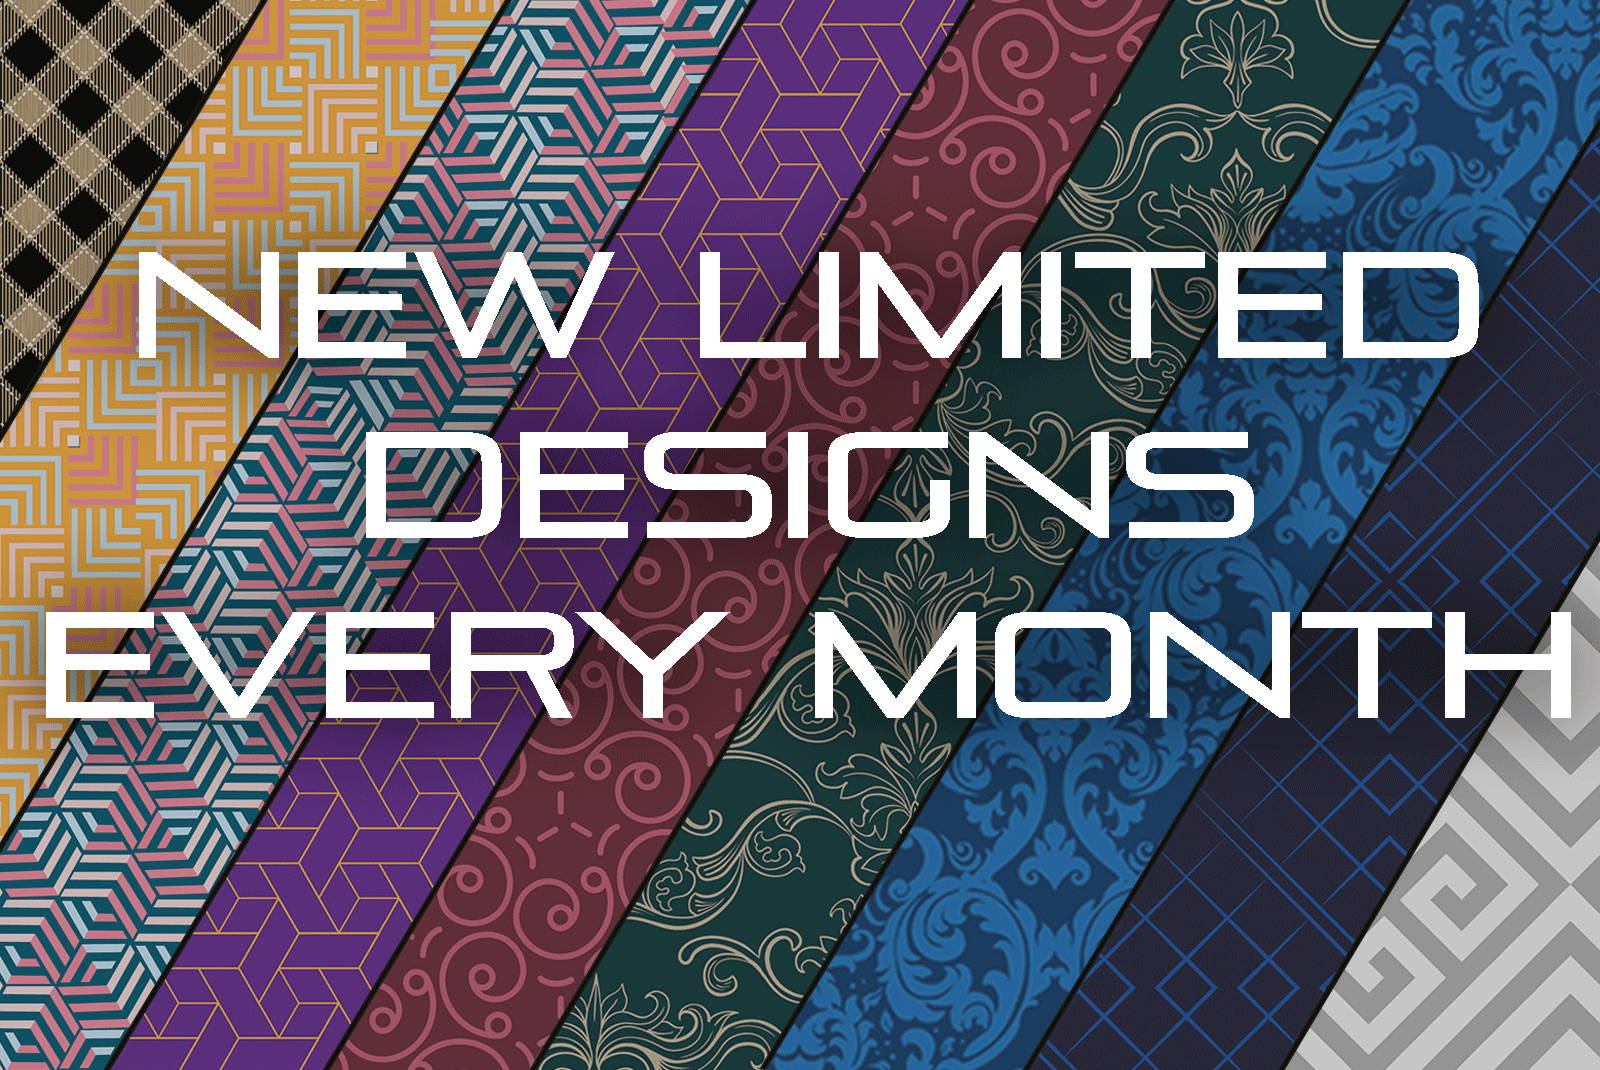 New limited designs every month - SOBEK